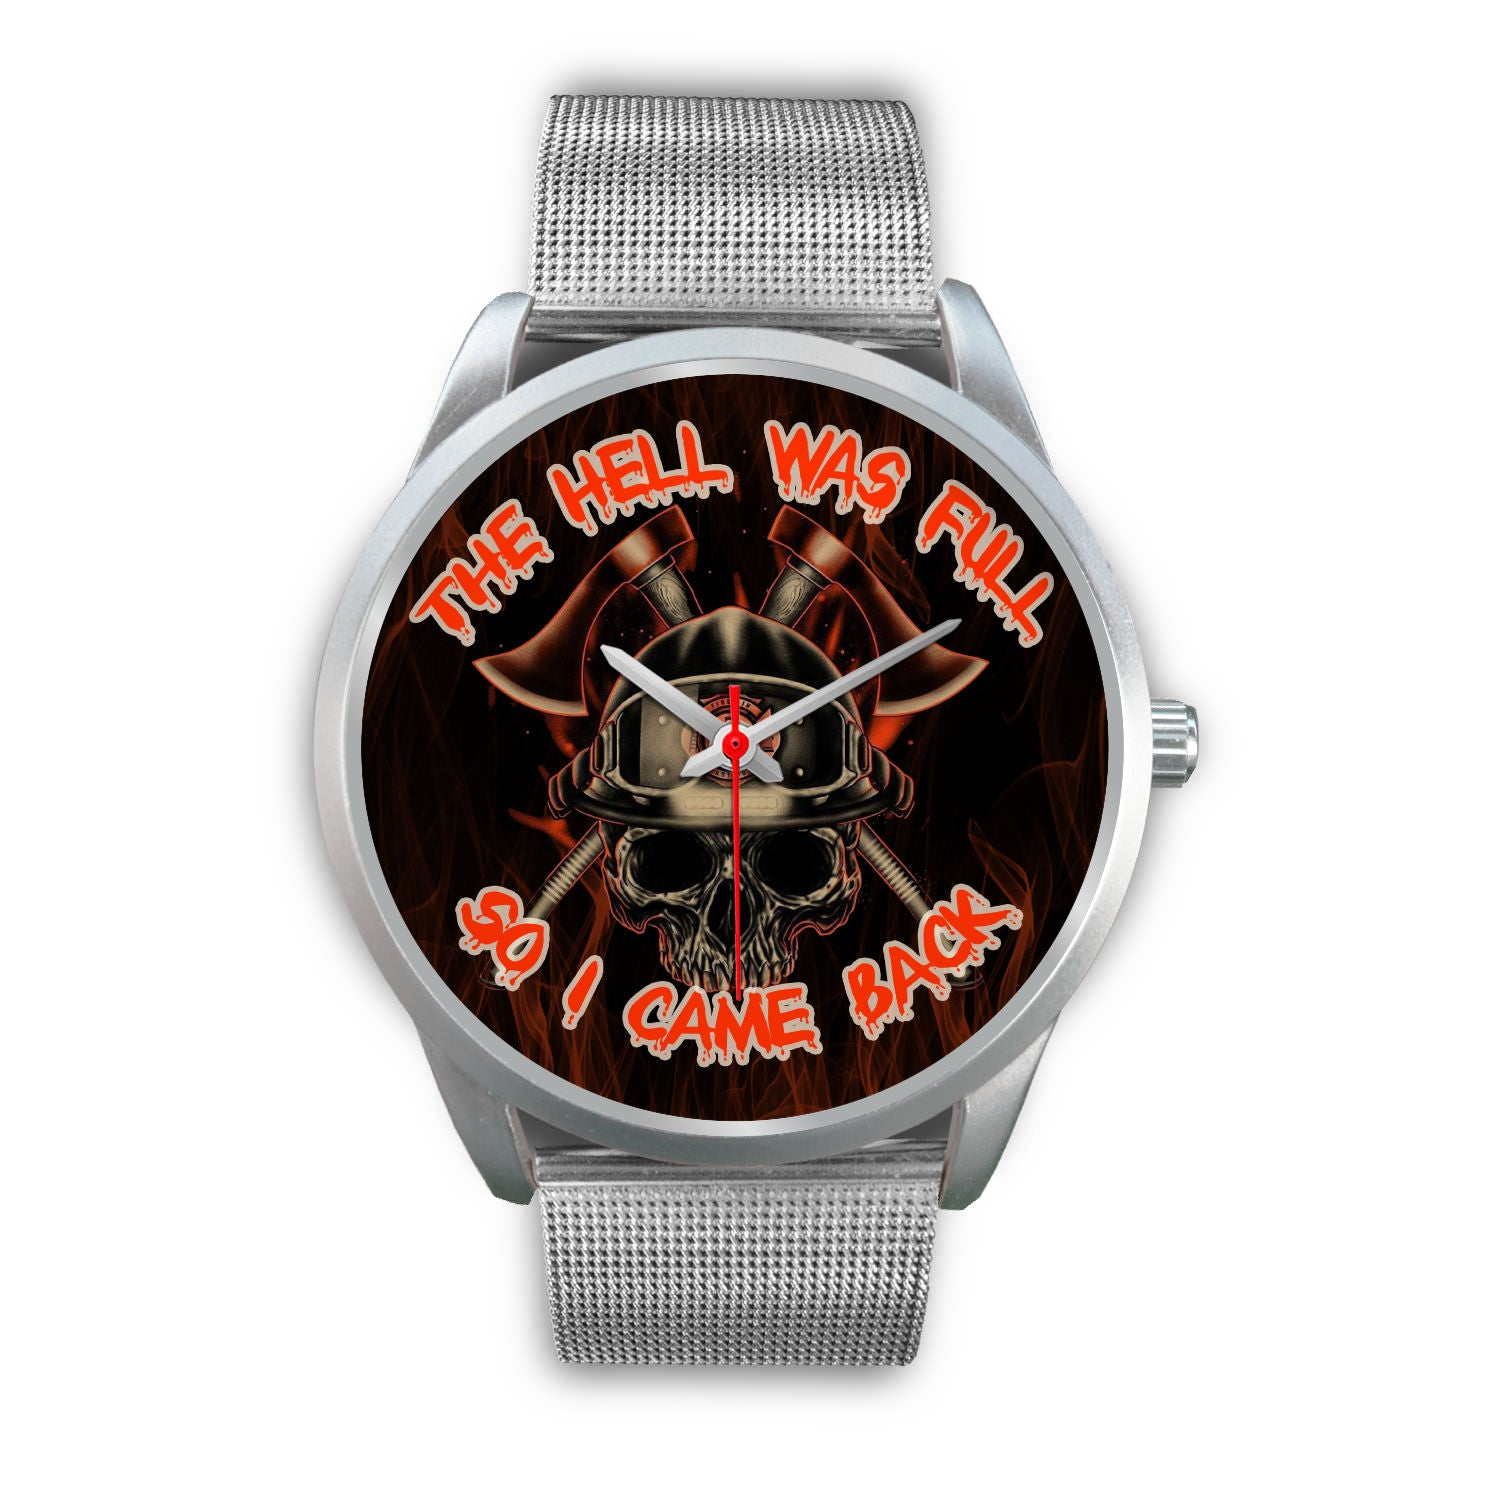 VIRA SILVER METAL WATCH FOR FIREFIGHTER LOVERS